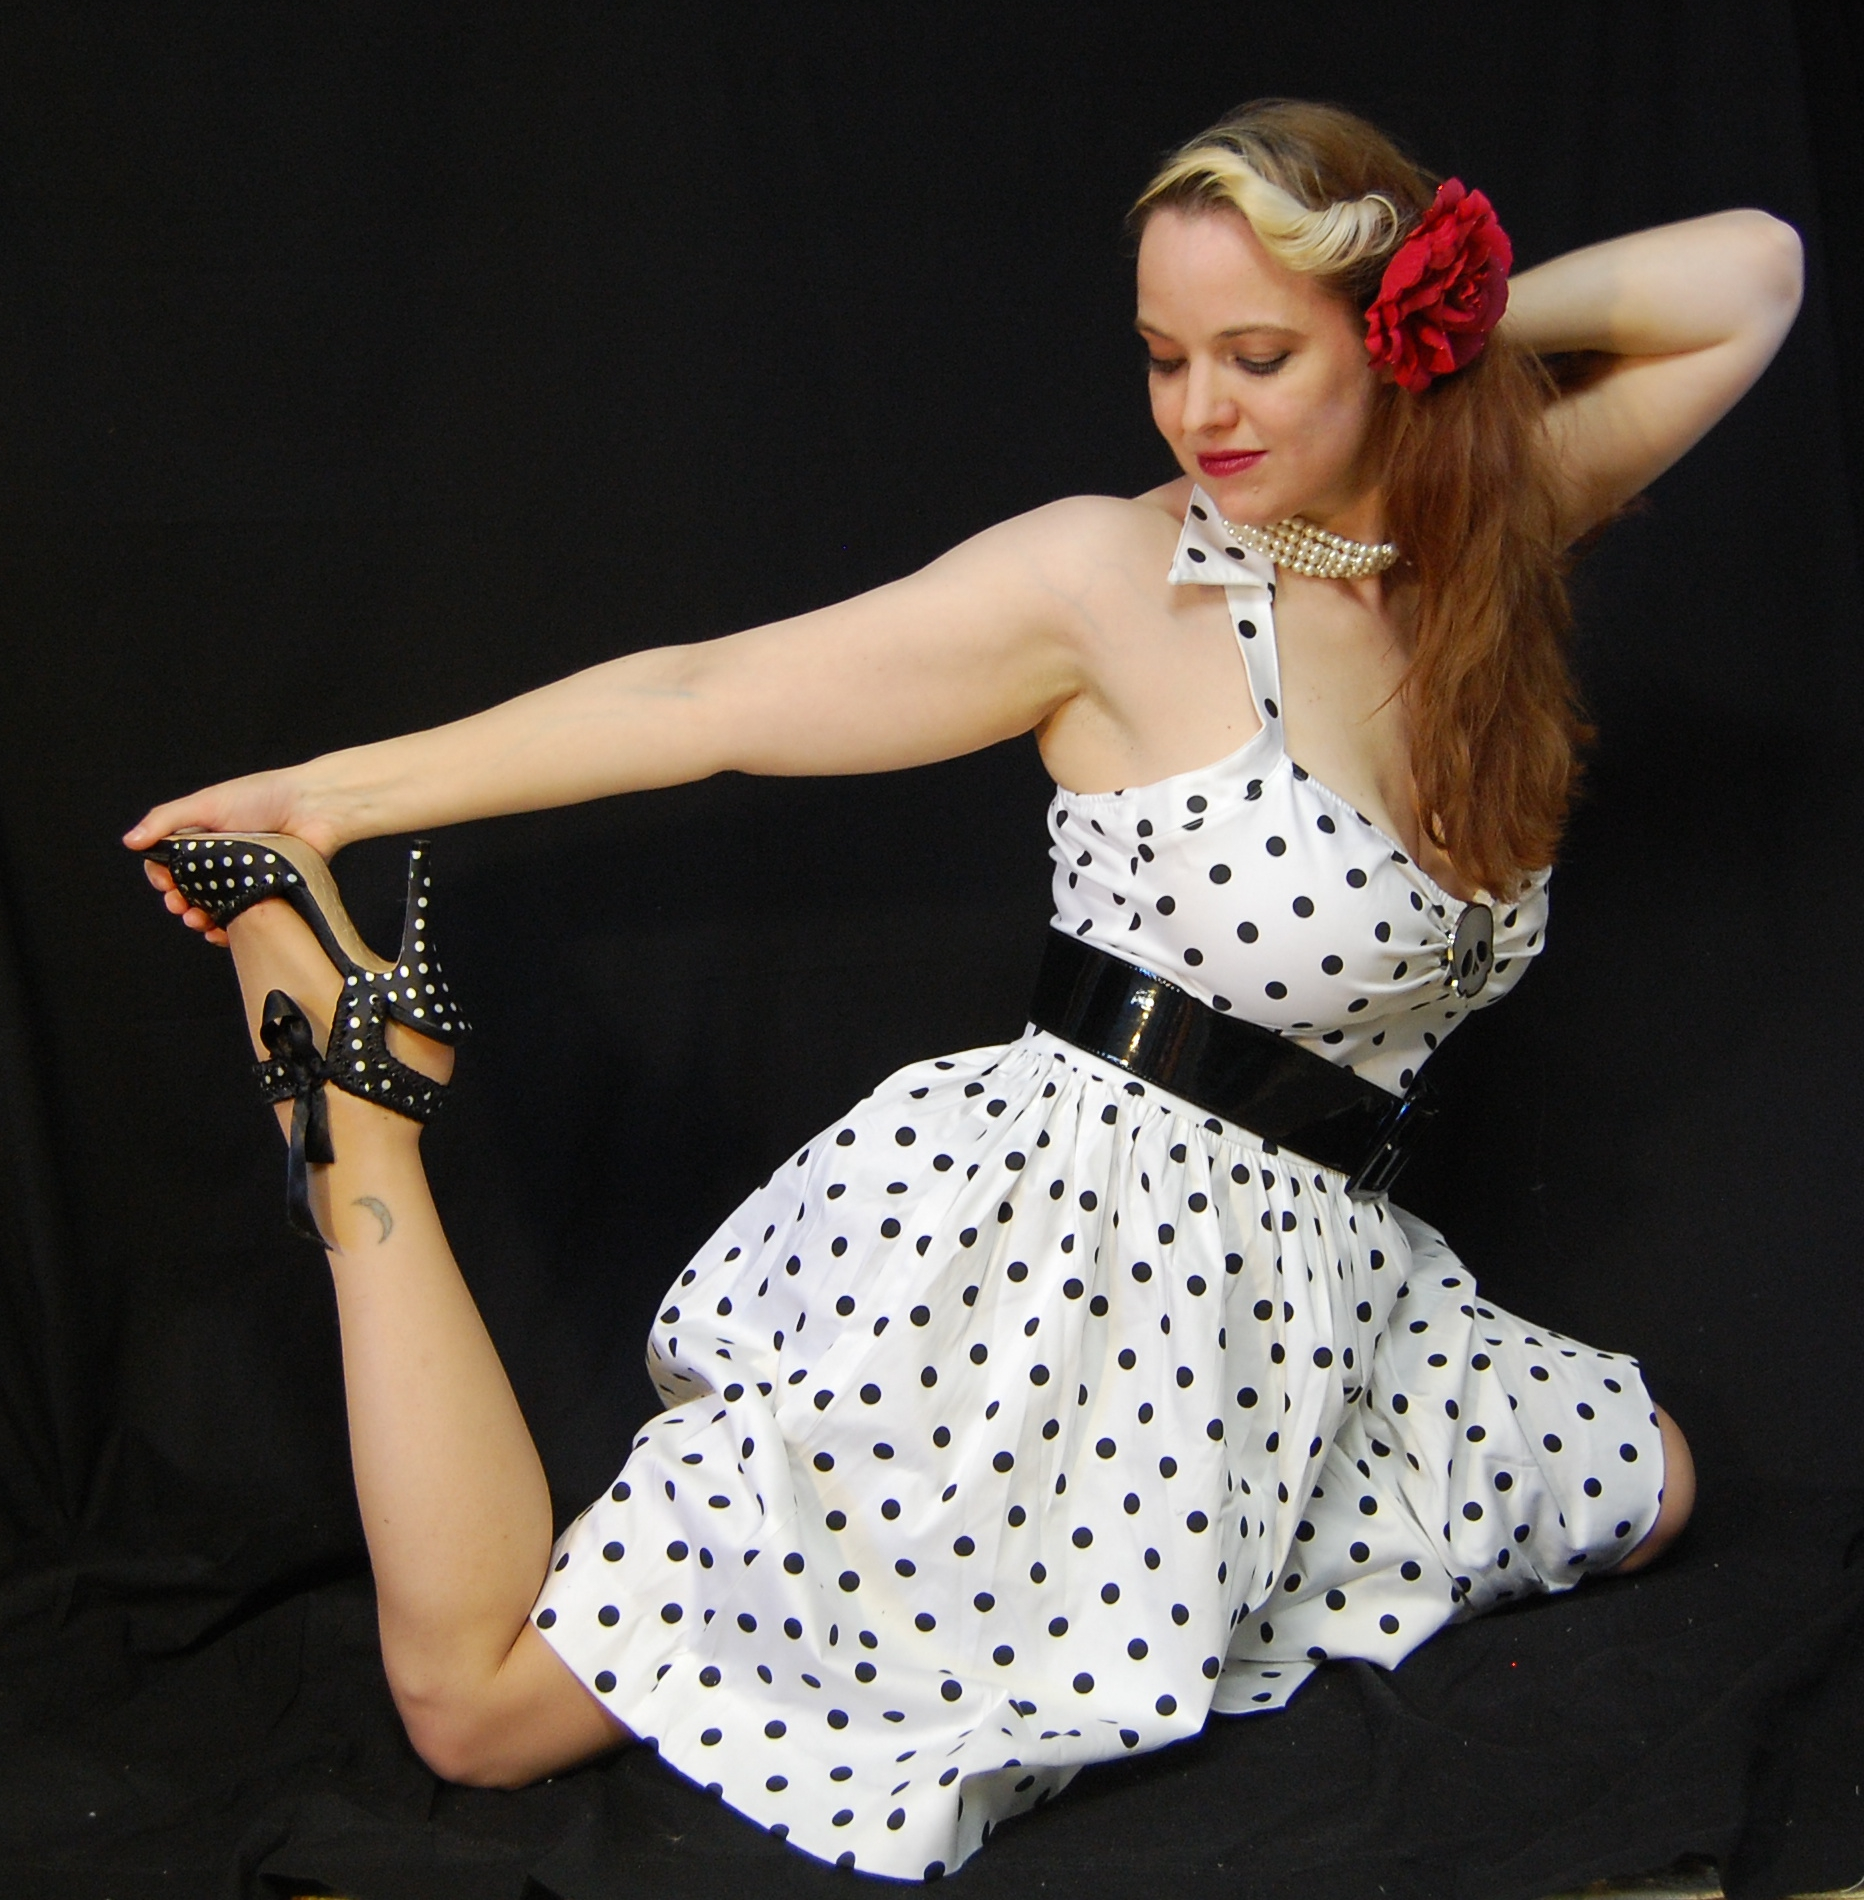 2010 Fife pinup white dress 0678